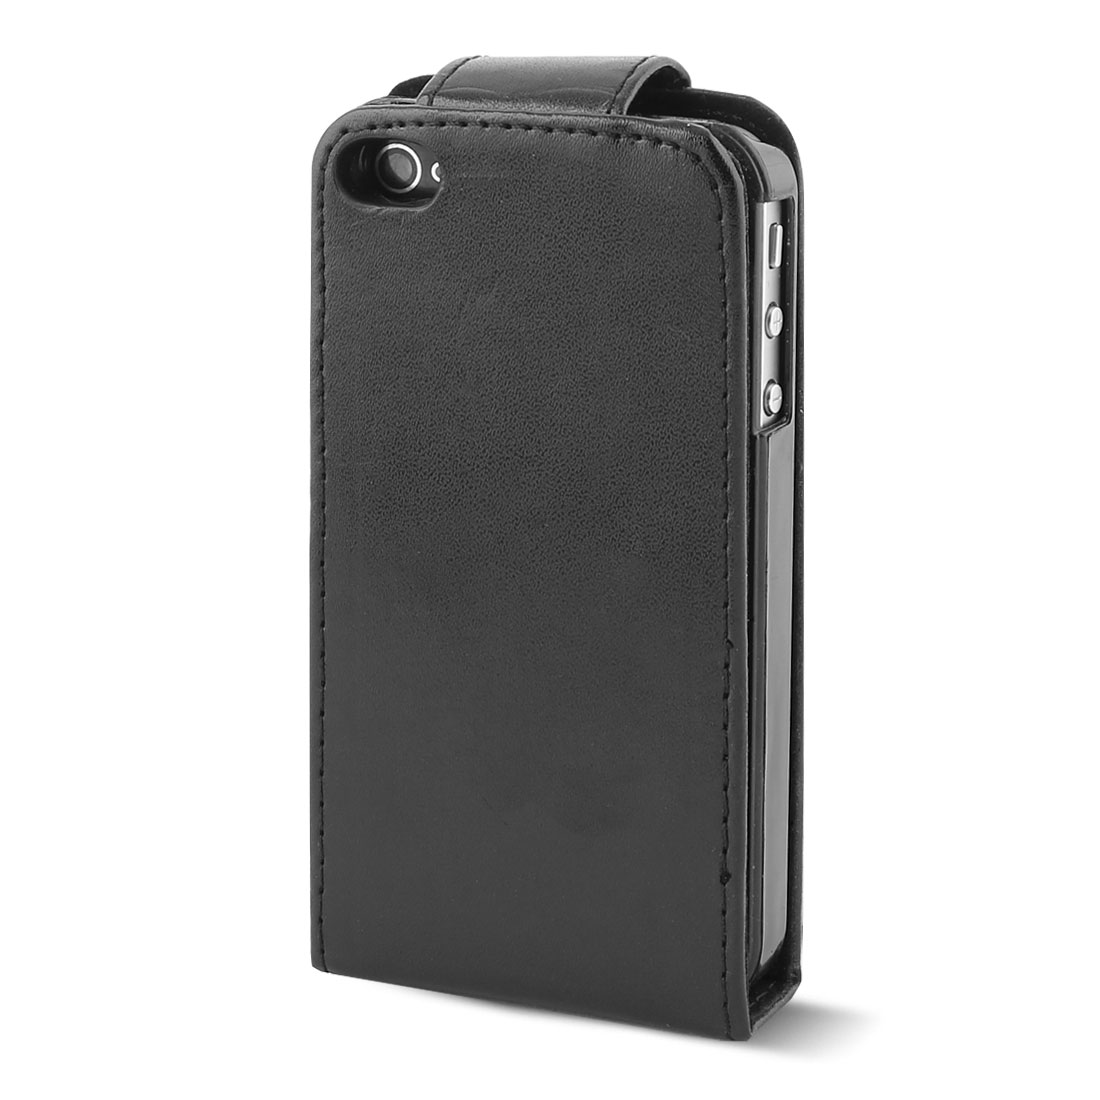 Rectangle Black Faux Leather Magnetic Case Pouch for iPhone 4G